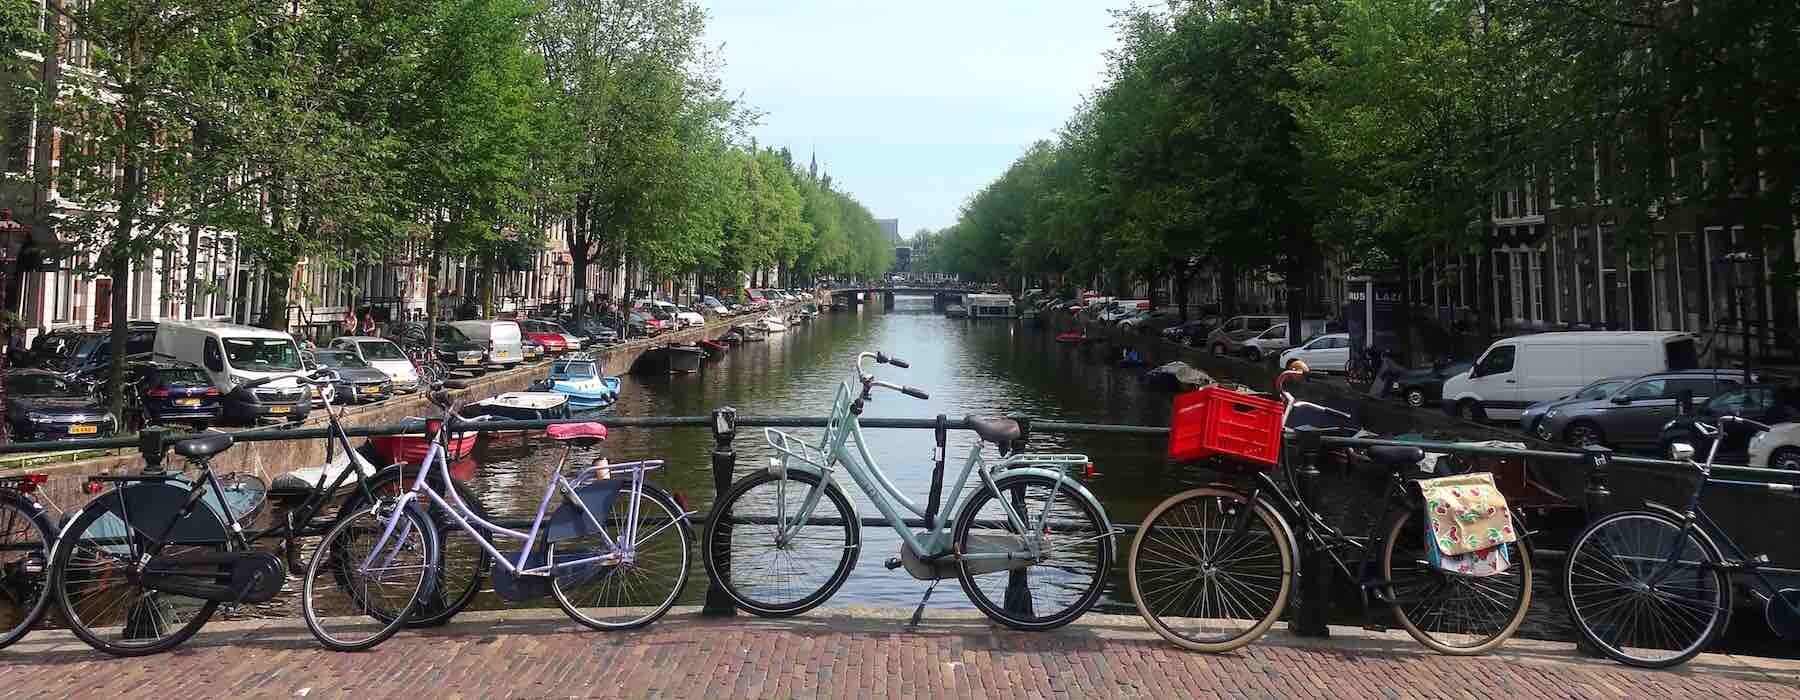 Canal in Holland Netherlands